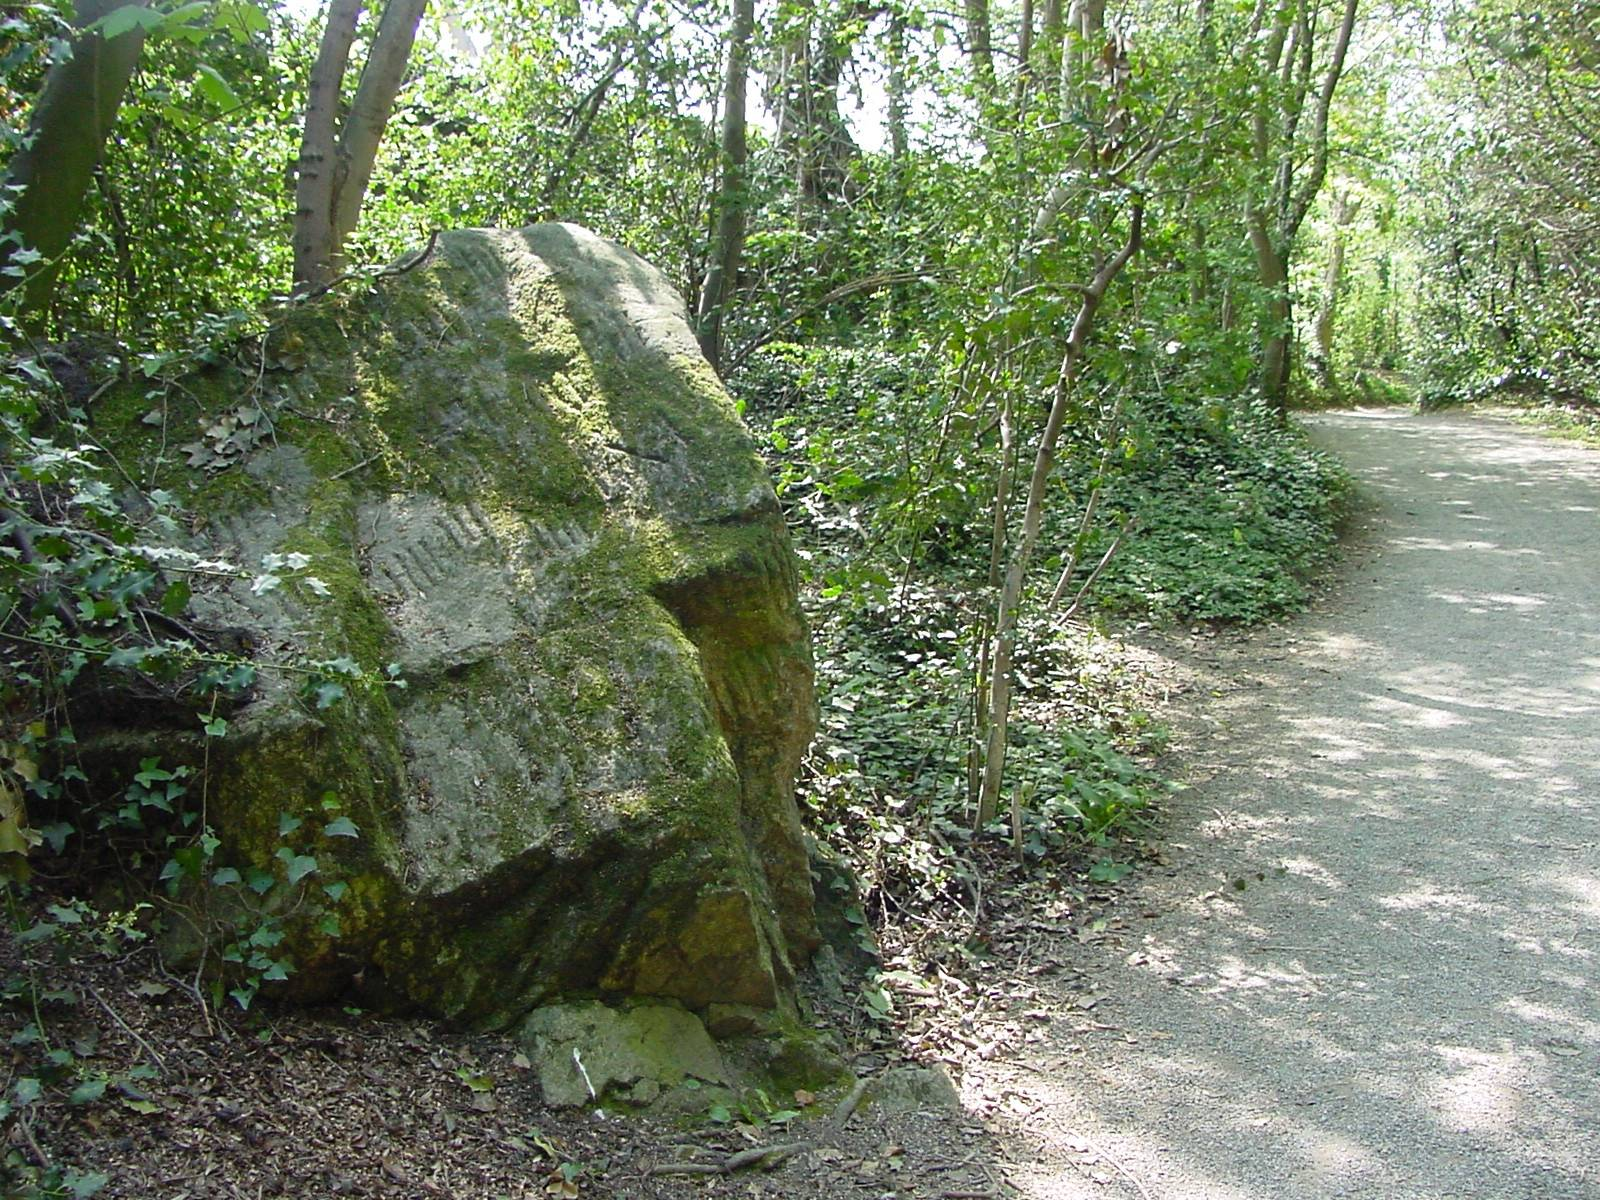 Ogham Stone in St Enda's Park. OPW.